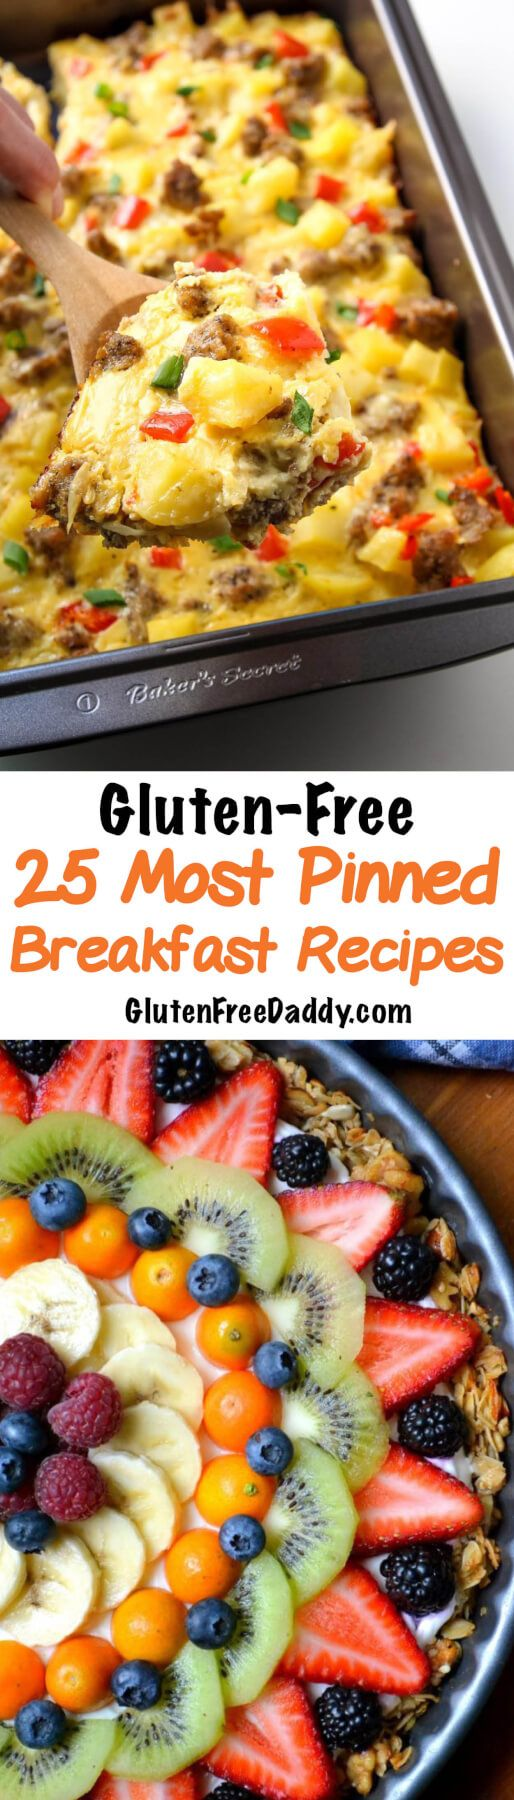 All of these gluten-free breakfast recipes have been pinned at least 50,000 times! I desperately need more breakfast recipes, so I'm pinning this for later.